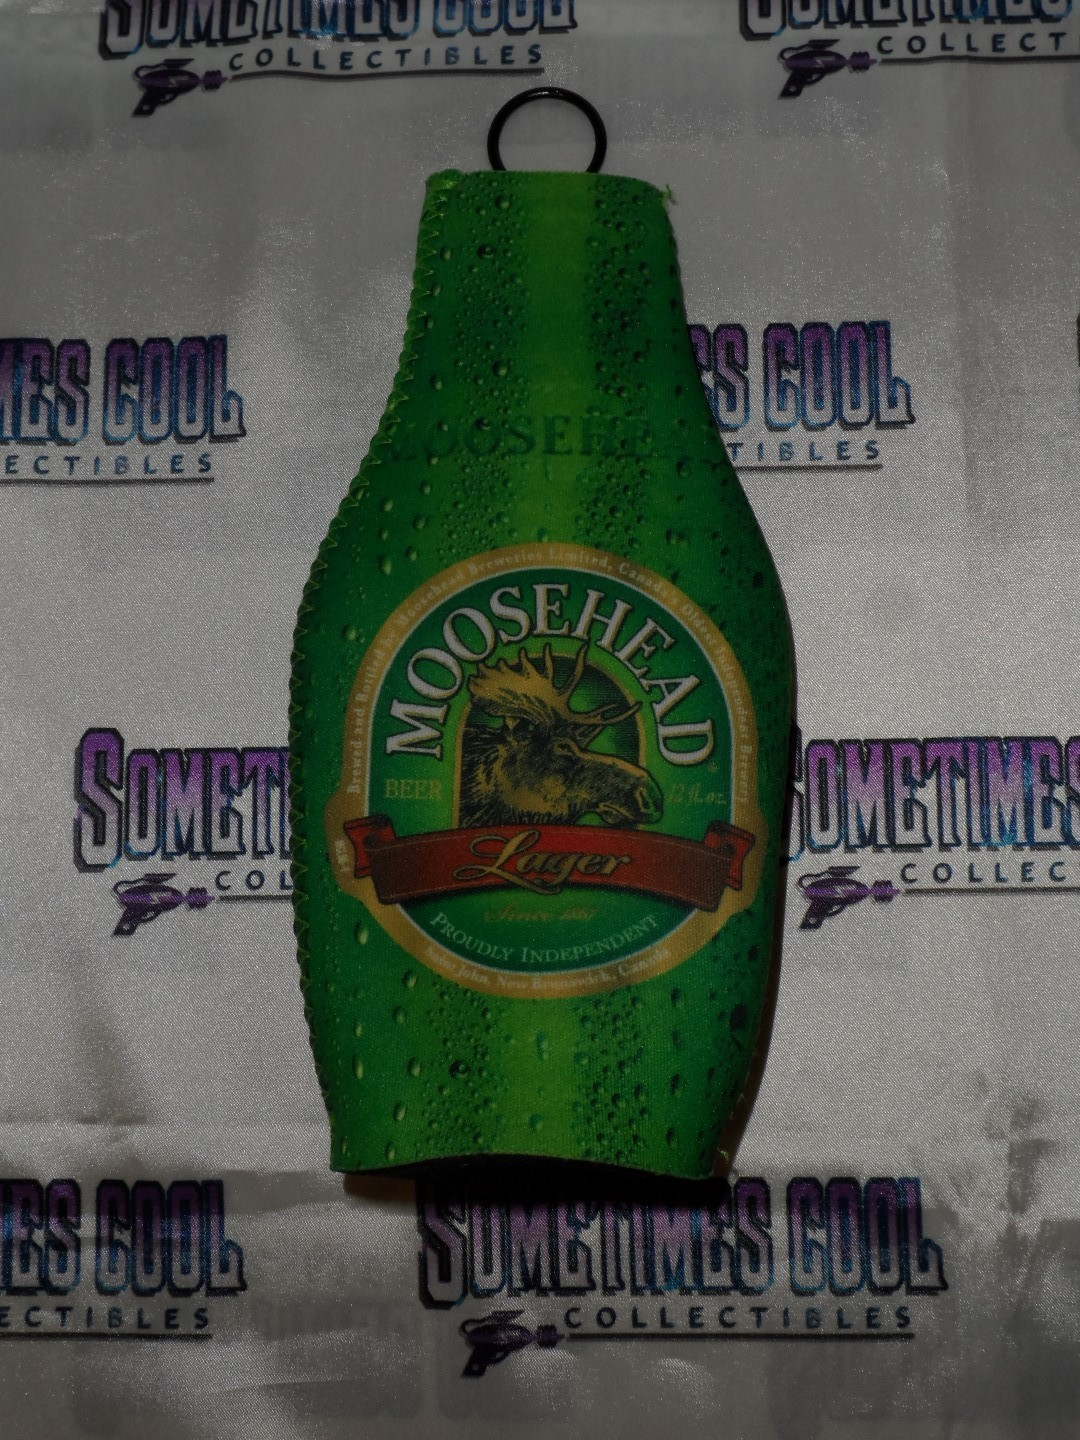 Moosehead Lager - Beer Bottle Koozie